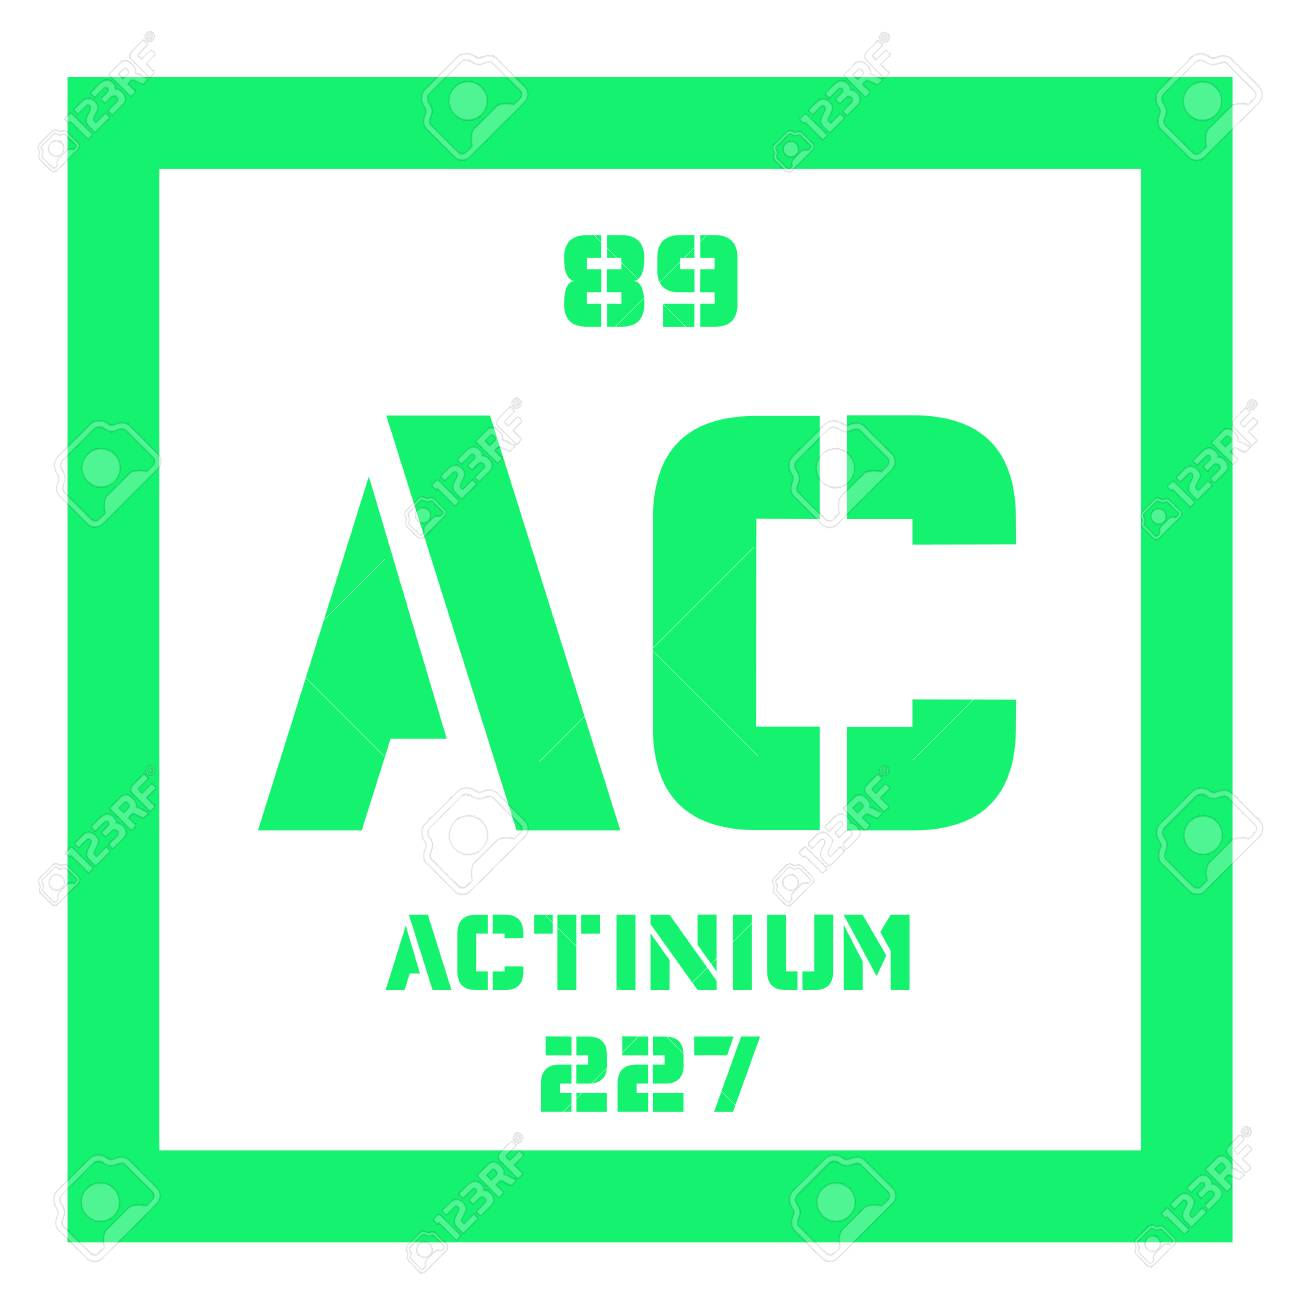 Actinium chemical element radioactive chemical element colored actinium chemical element radioactive chemical element colored icon with atomic number and atomic weight urtaz Images